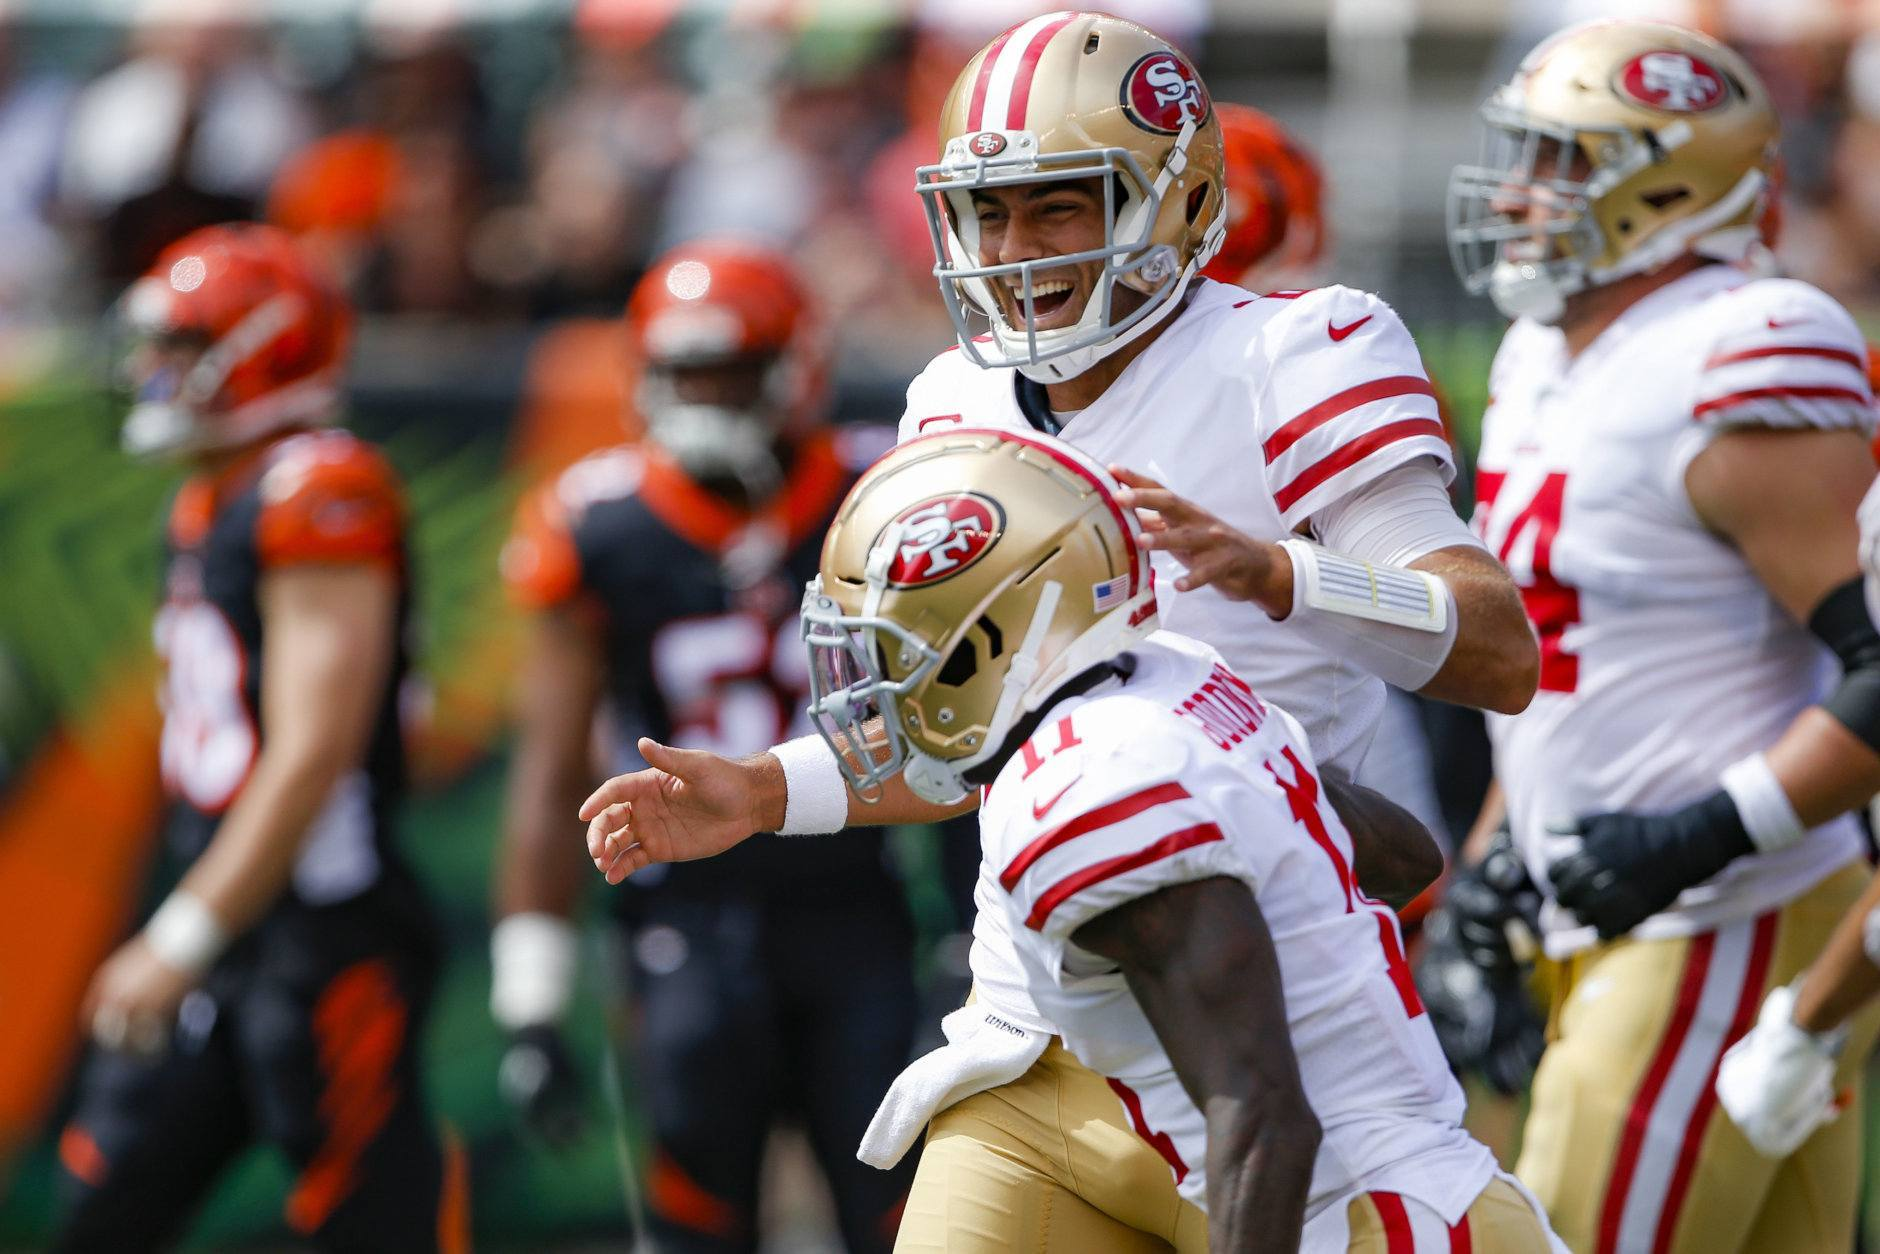 "<p><b><i>49ers 41</i></b><br /> <b><i>Bengals 17</i></b></p> <p>Good for San Francisco: Jimmy G looks like the guy they banked on him developing into and the Niners are 2-0 for the first time since 2012. Beating the lousy Bengals and Bucs is one thing, but if they can knock off a desperate Steelers team (even with <a href=""https://deadspin.com/heres-a-really-bizarre-stat-about-the-steelers-1830710641"" target=""_blank"" rel=""noopener"">their infamous West Coast struggles</a>) it&#8217;ll be time to talk about whether the NFC West is the best division in football.</p>"